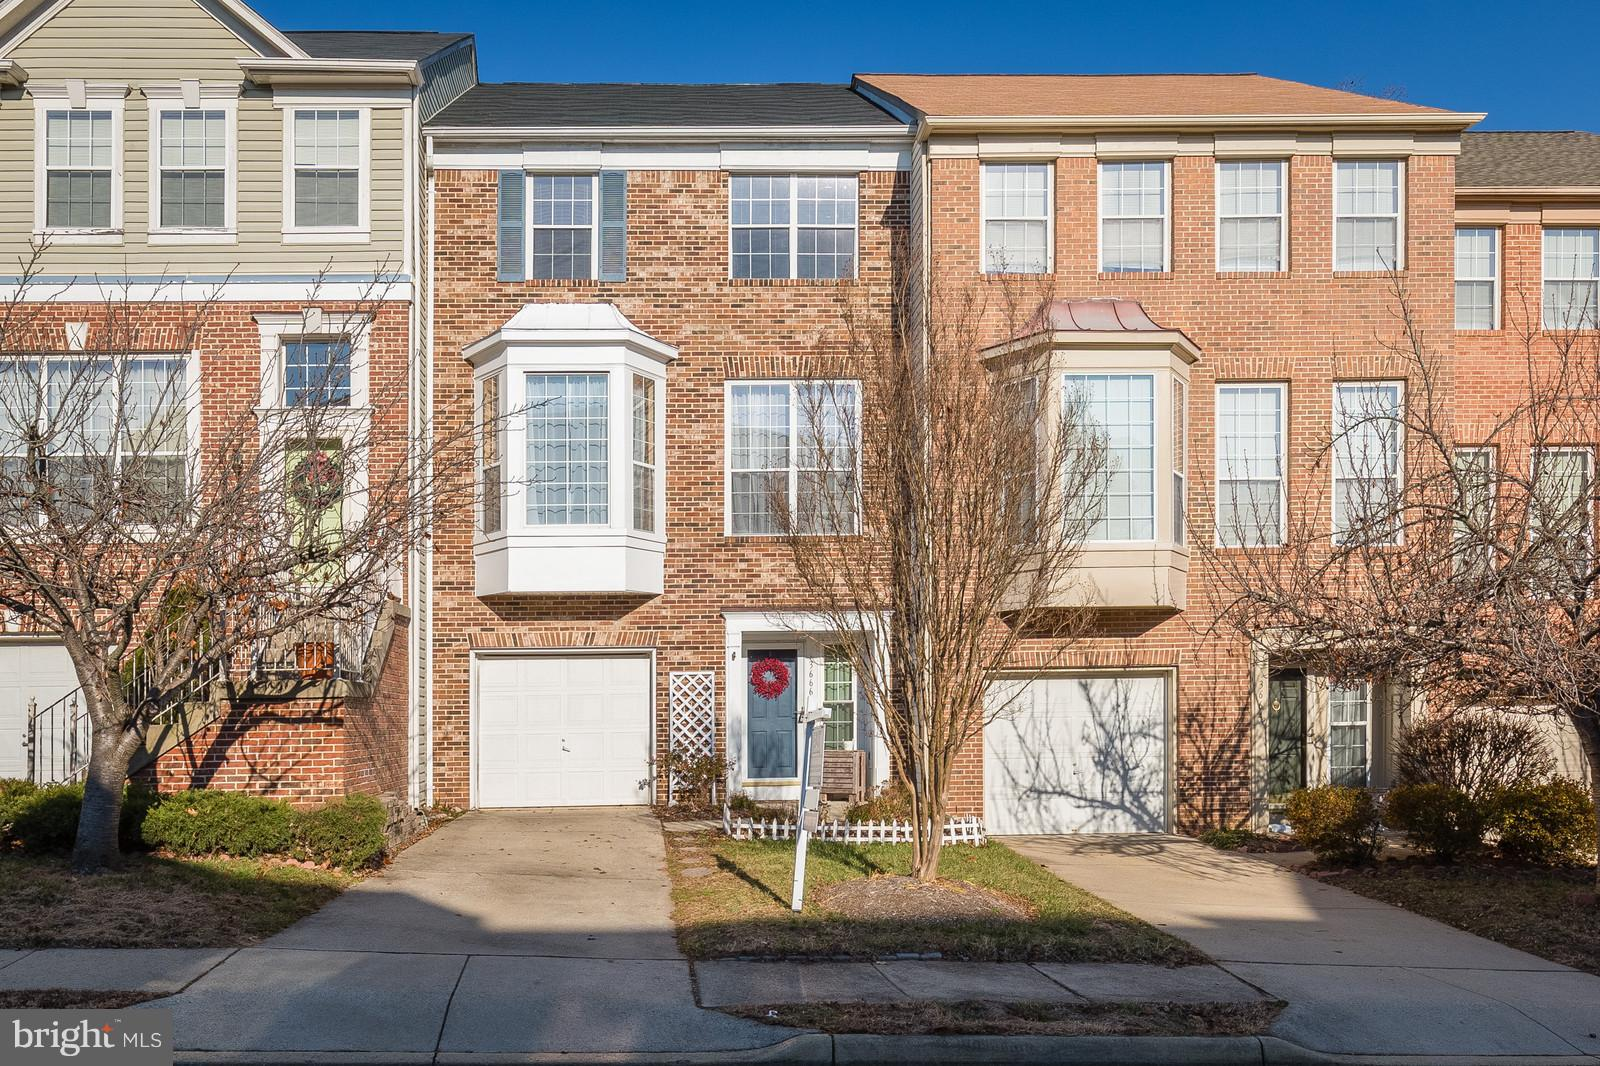 New to the market. This is a Pulte Garage Townhouse that has a new roof, fenced yard, deck, gleaming